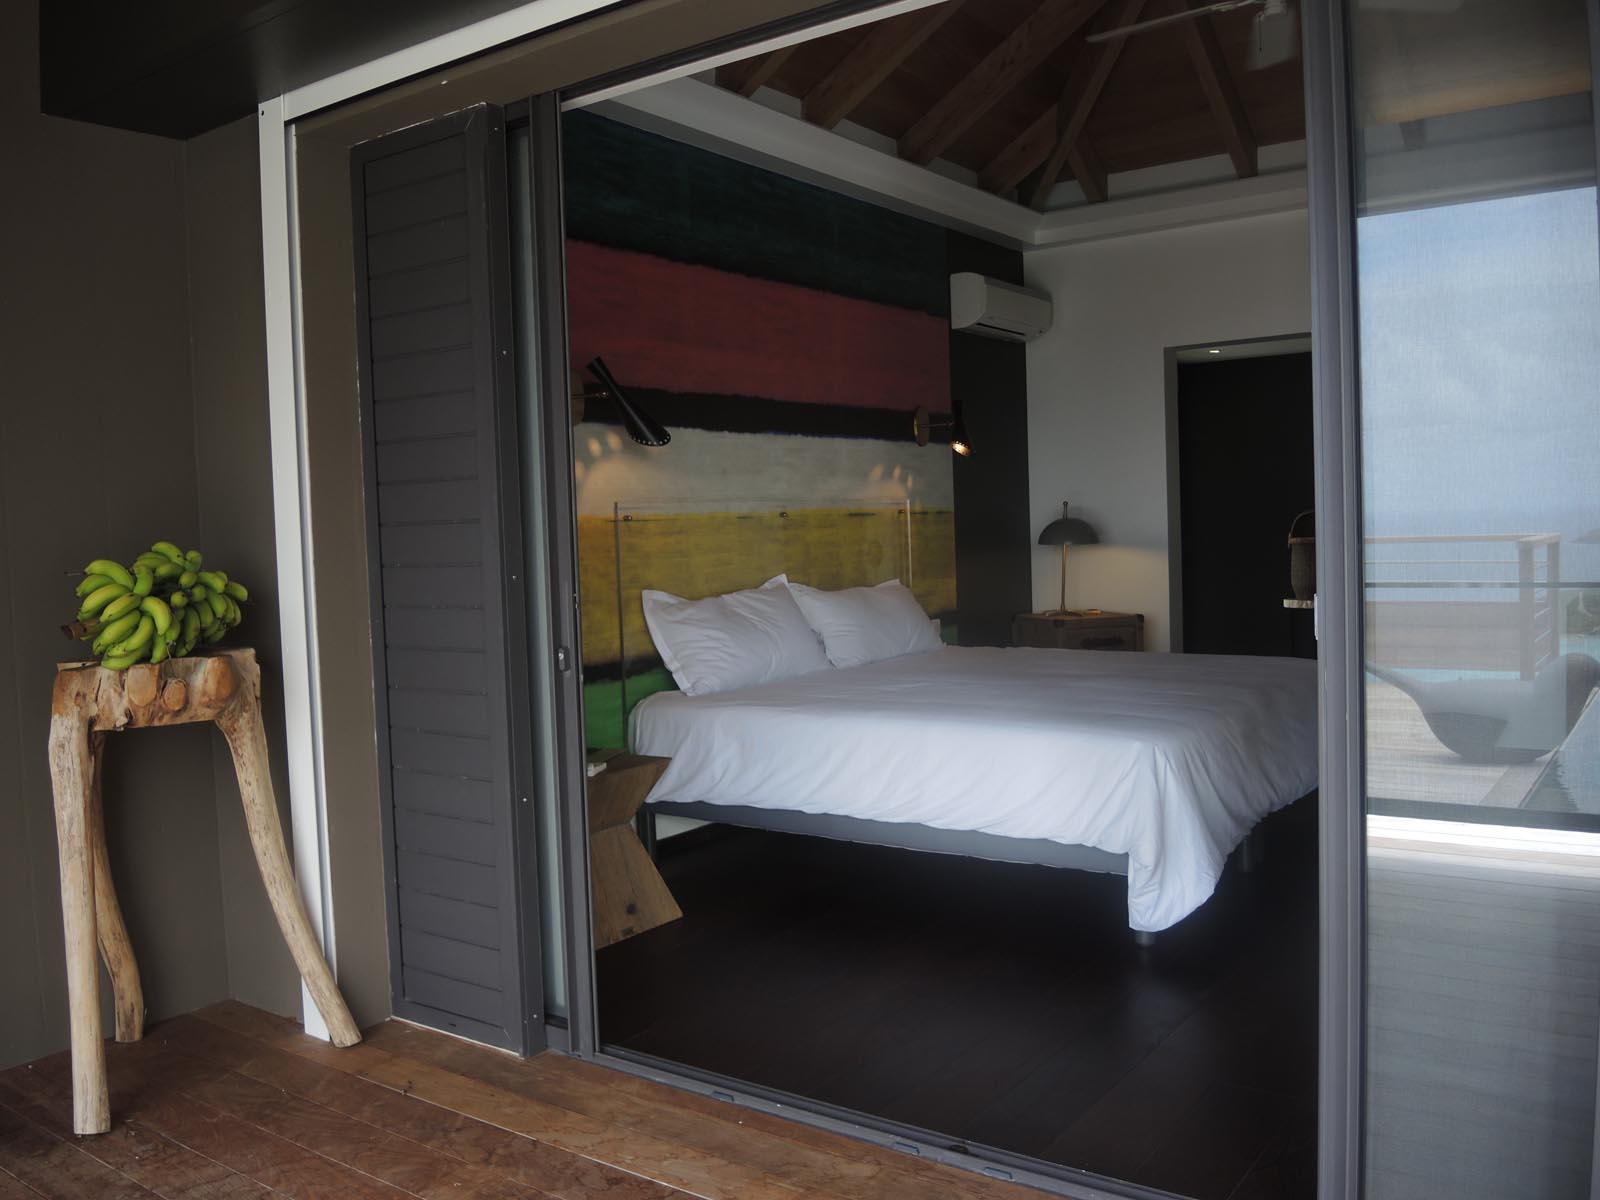 This Caribbean luxury holiday villa has three spacious bedrooms with private bathrooms.